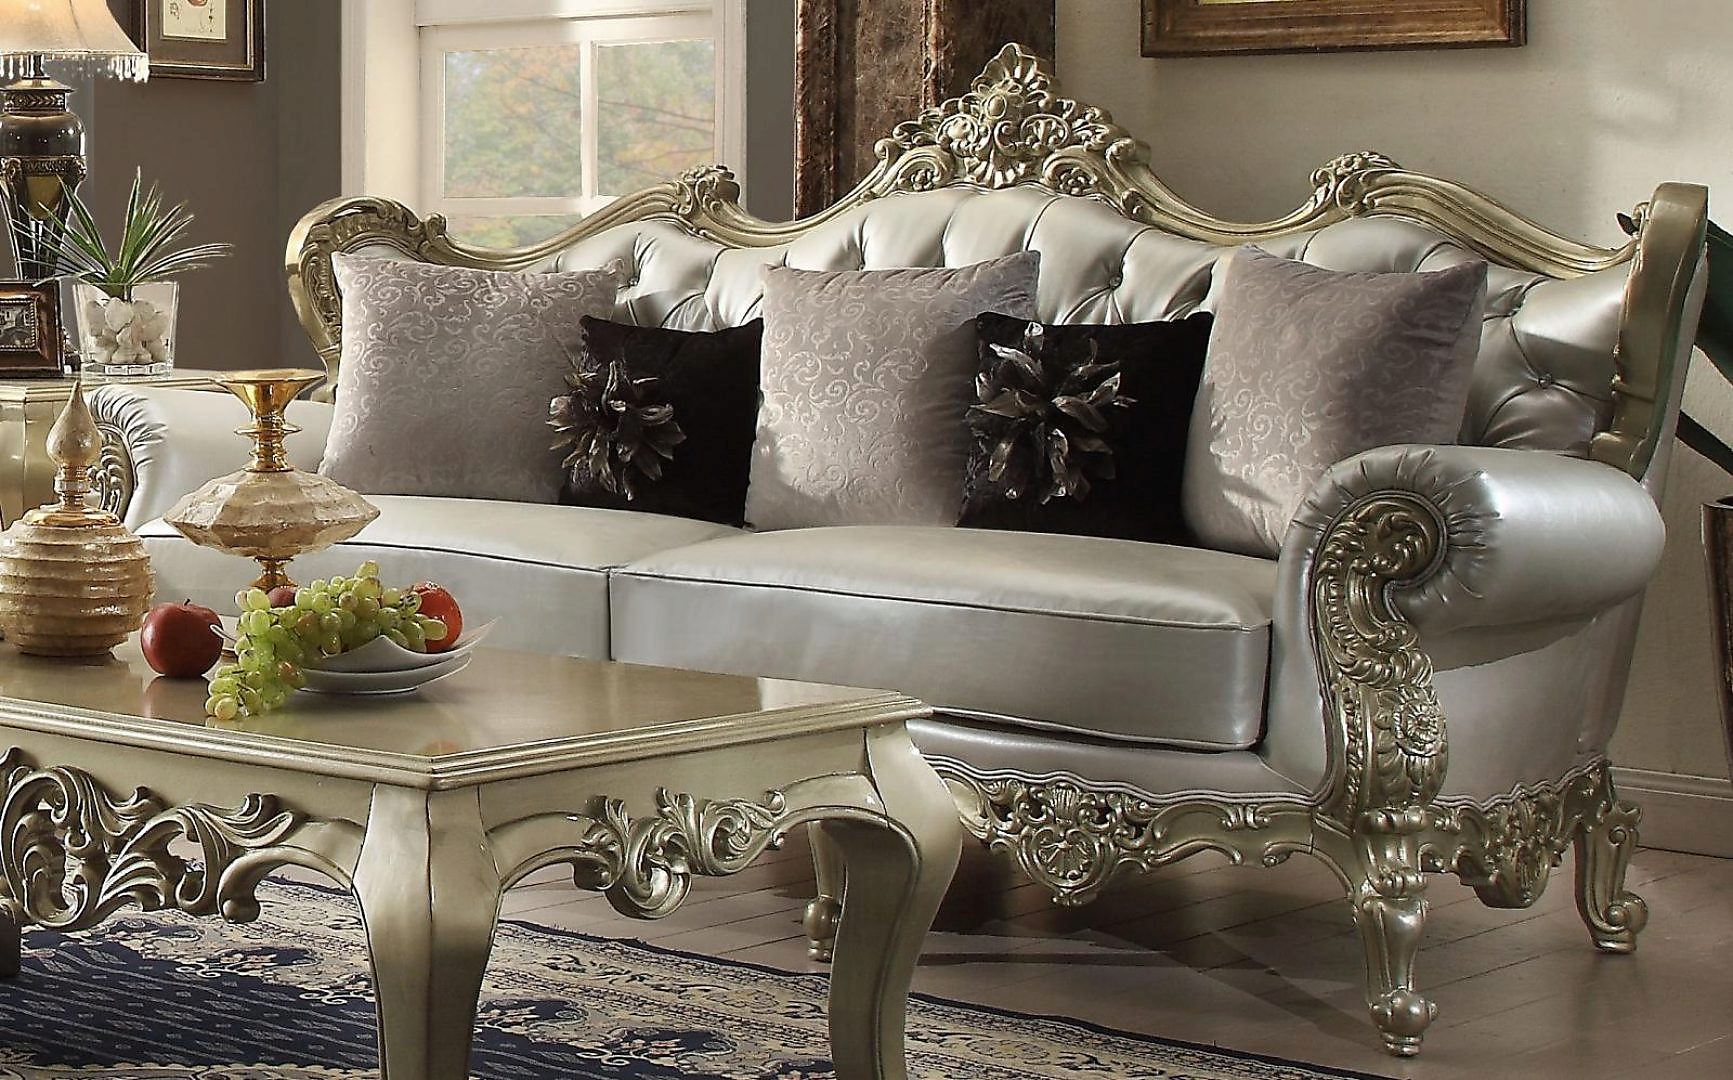 Traditional Victorian HD-13006-SL Sofa and Loveseat Set 2Pcs by Homey Design